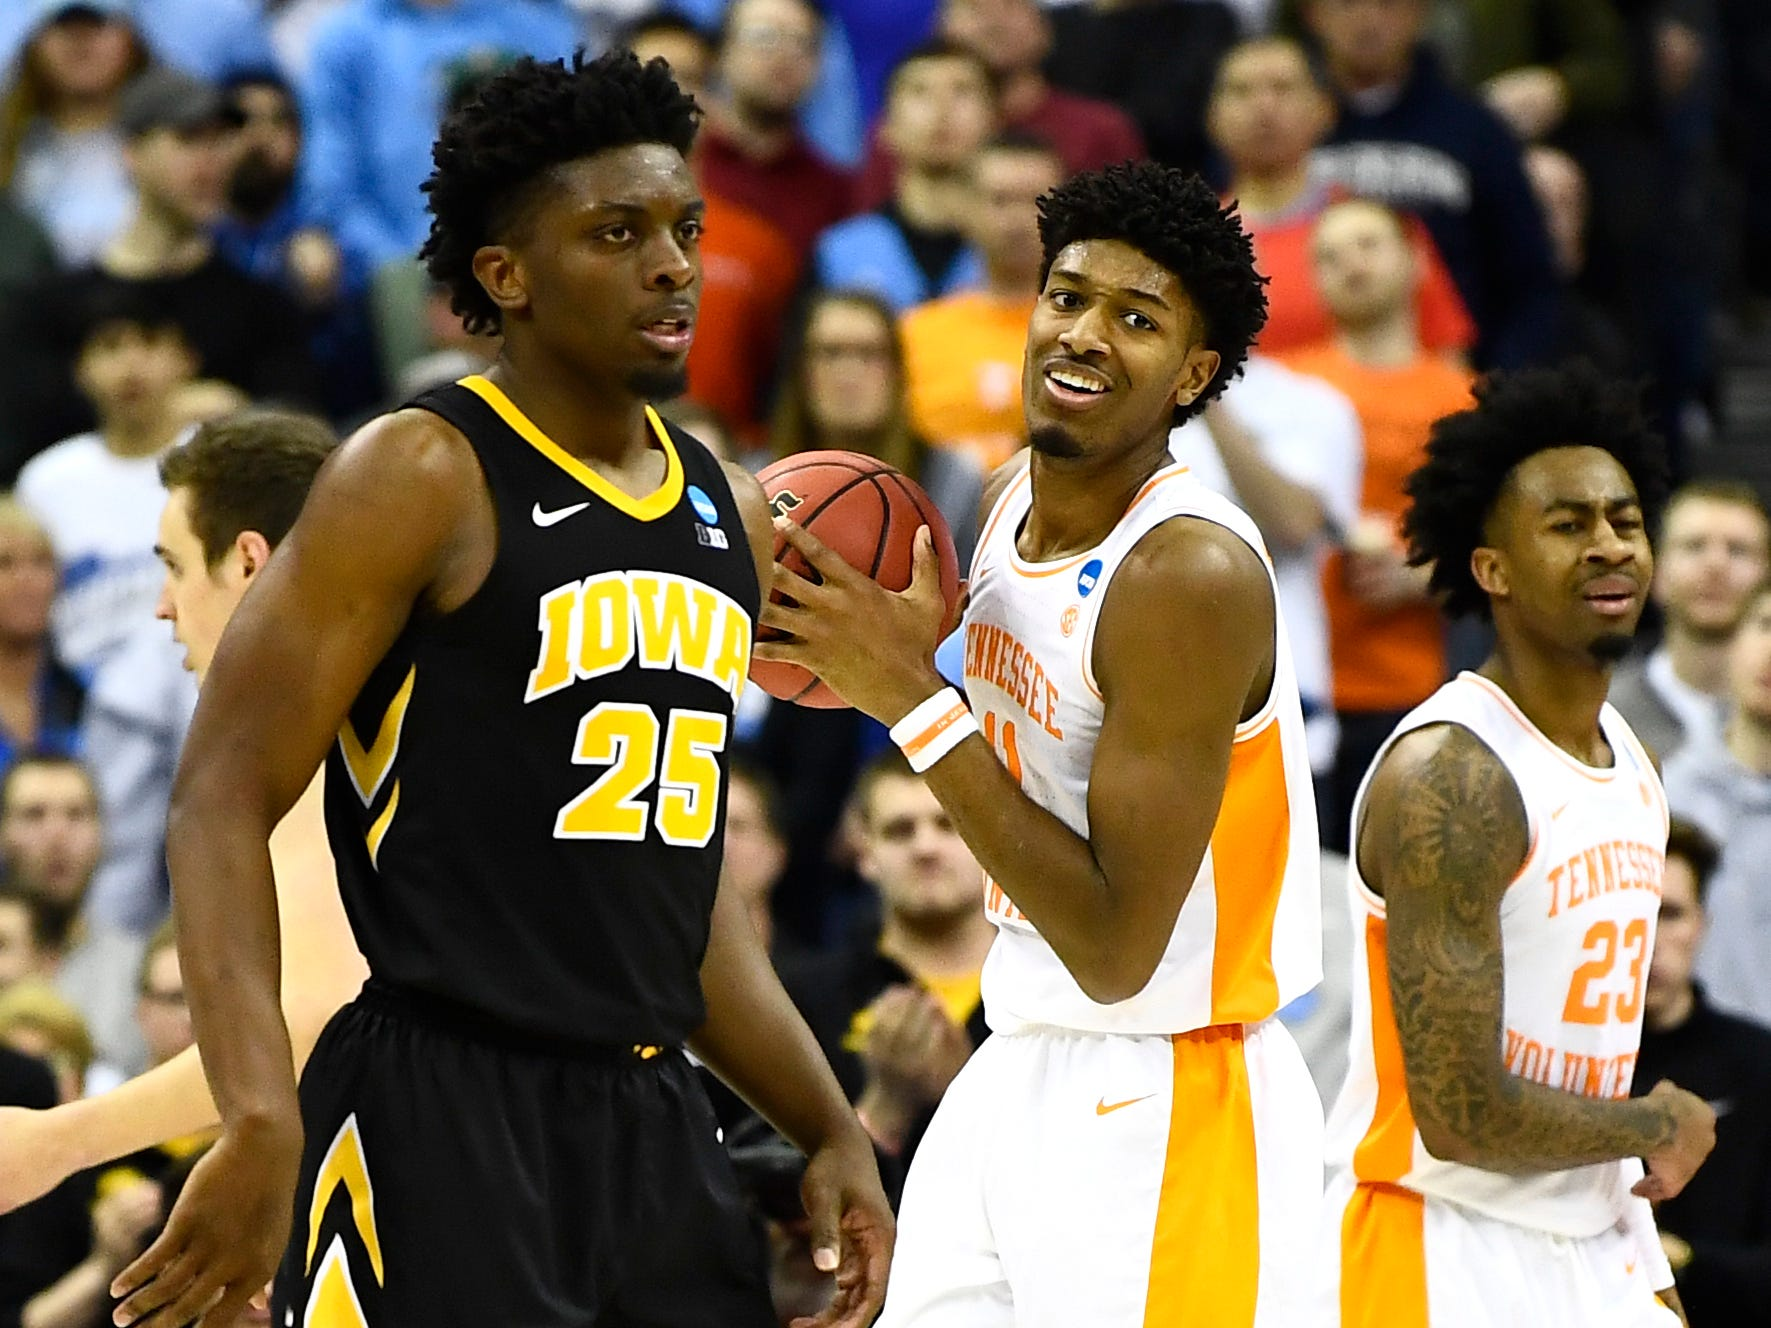 Tennessee forward Kyle Alexander (11) and Tennessee guard Brad Woodson (12) react to a foul call during the overtimewin over the Iowa Hawkeyes in the second round of the NCAA Tournament at Nationwide Arena in Columbus, Ohio, Sunday, March 24, 2019.